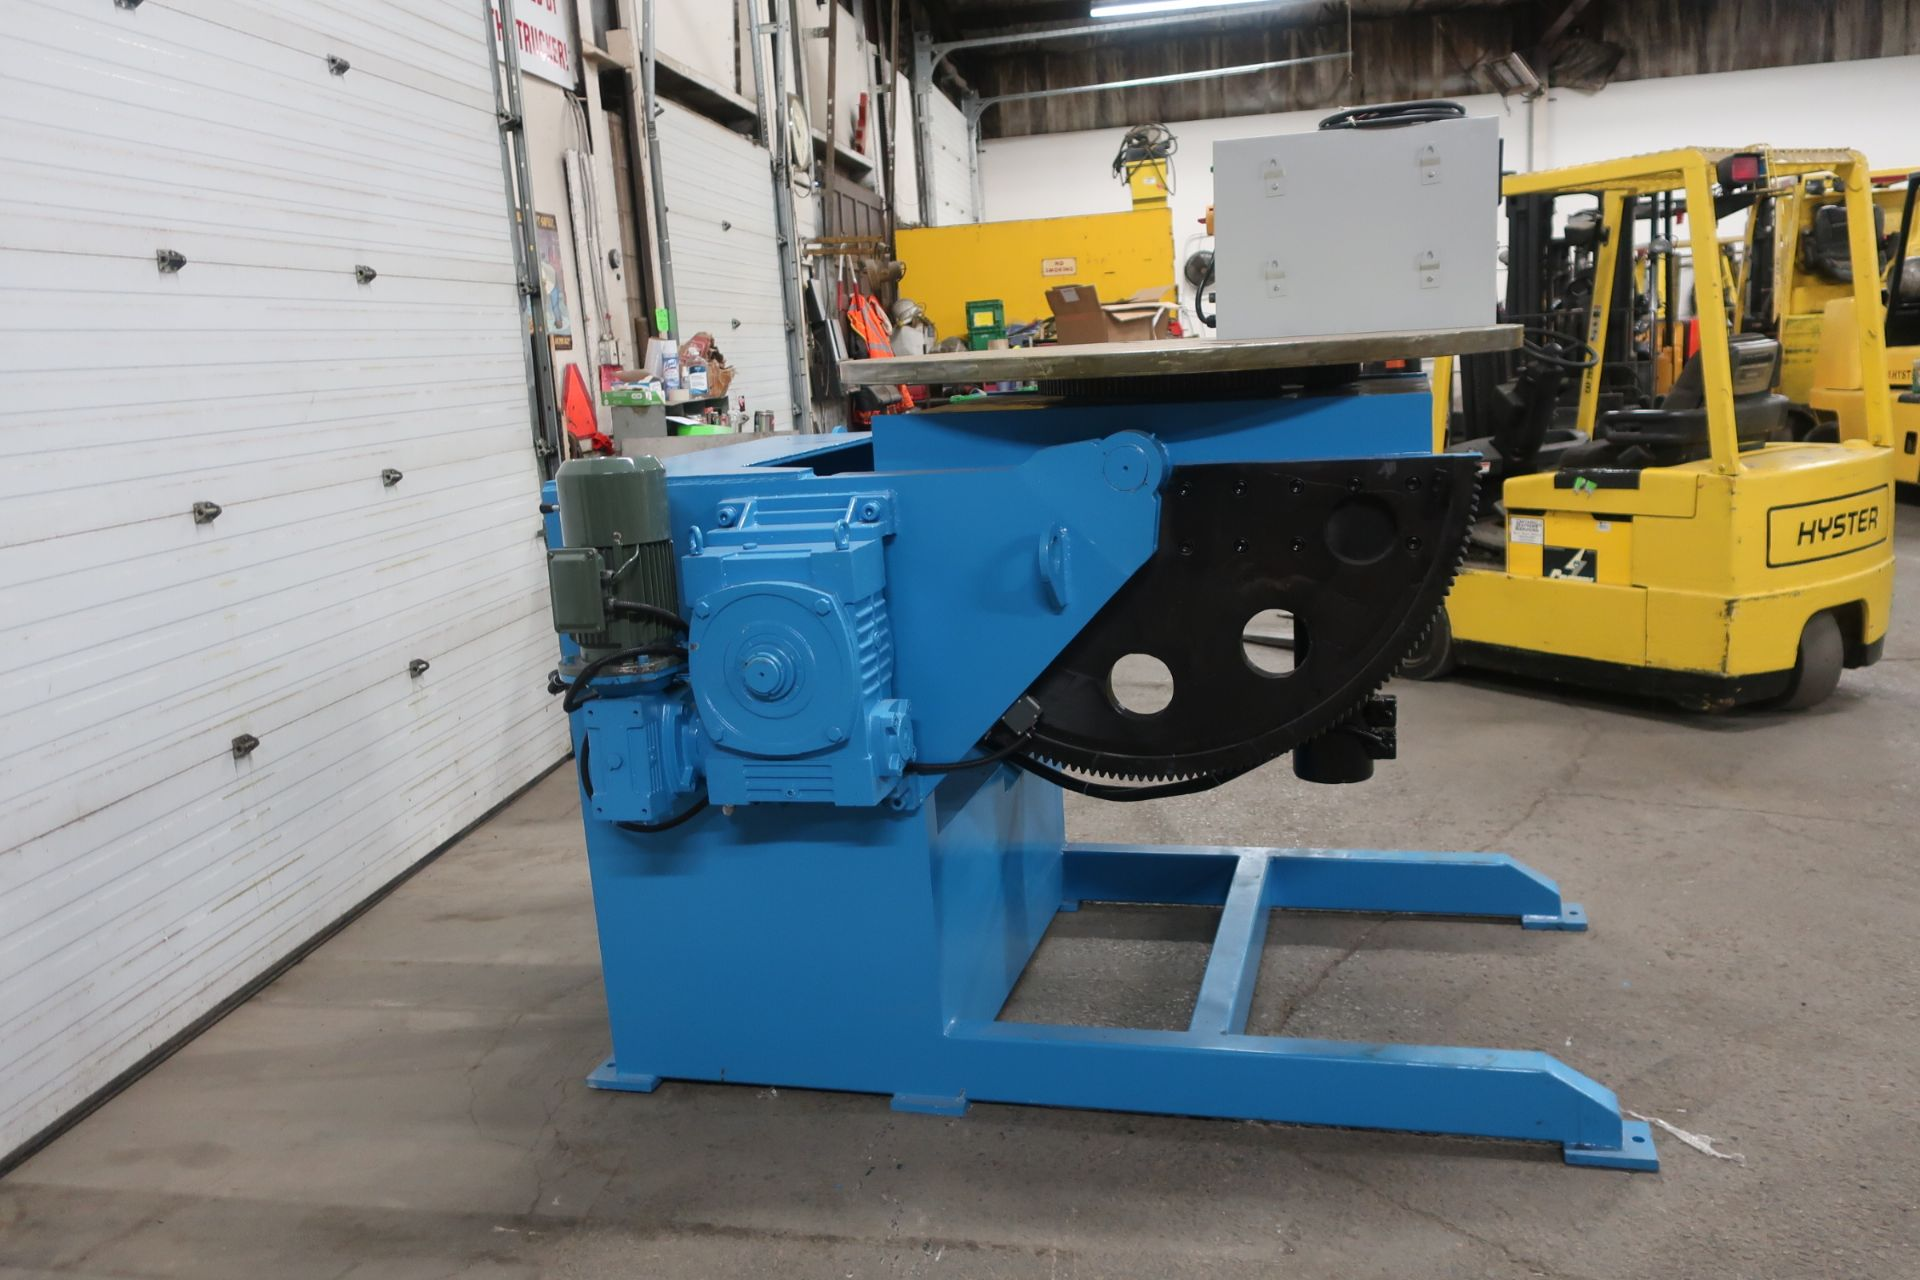 BWJ-30 WELDING POSITIONER 3000kg or 6600lbs capacity - tilt and rotate with variable speed drive and - Image 2 of 4